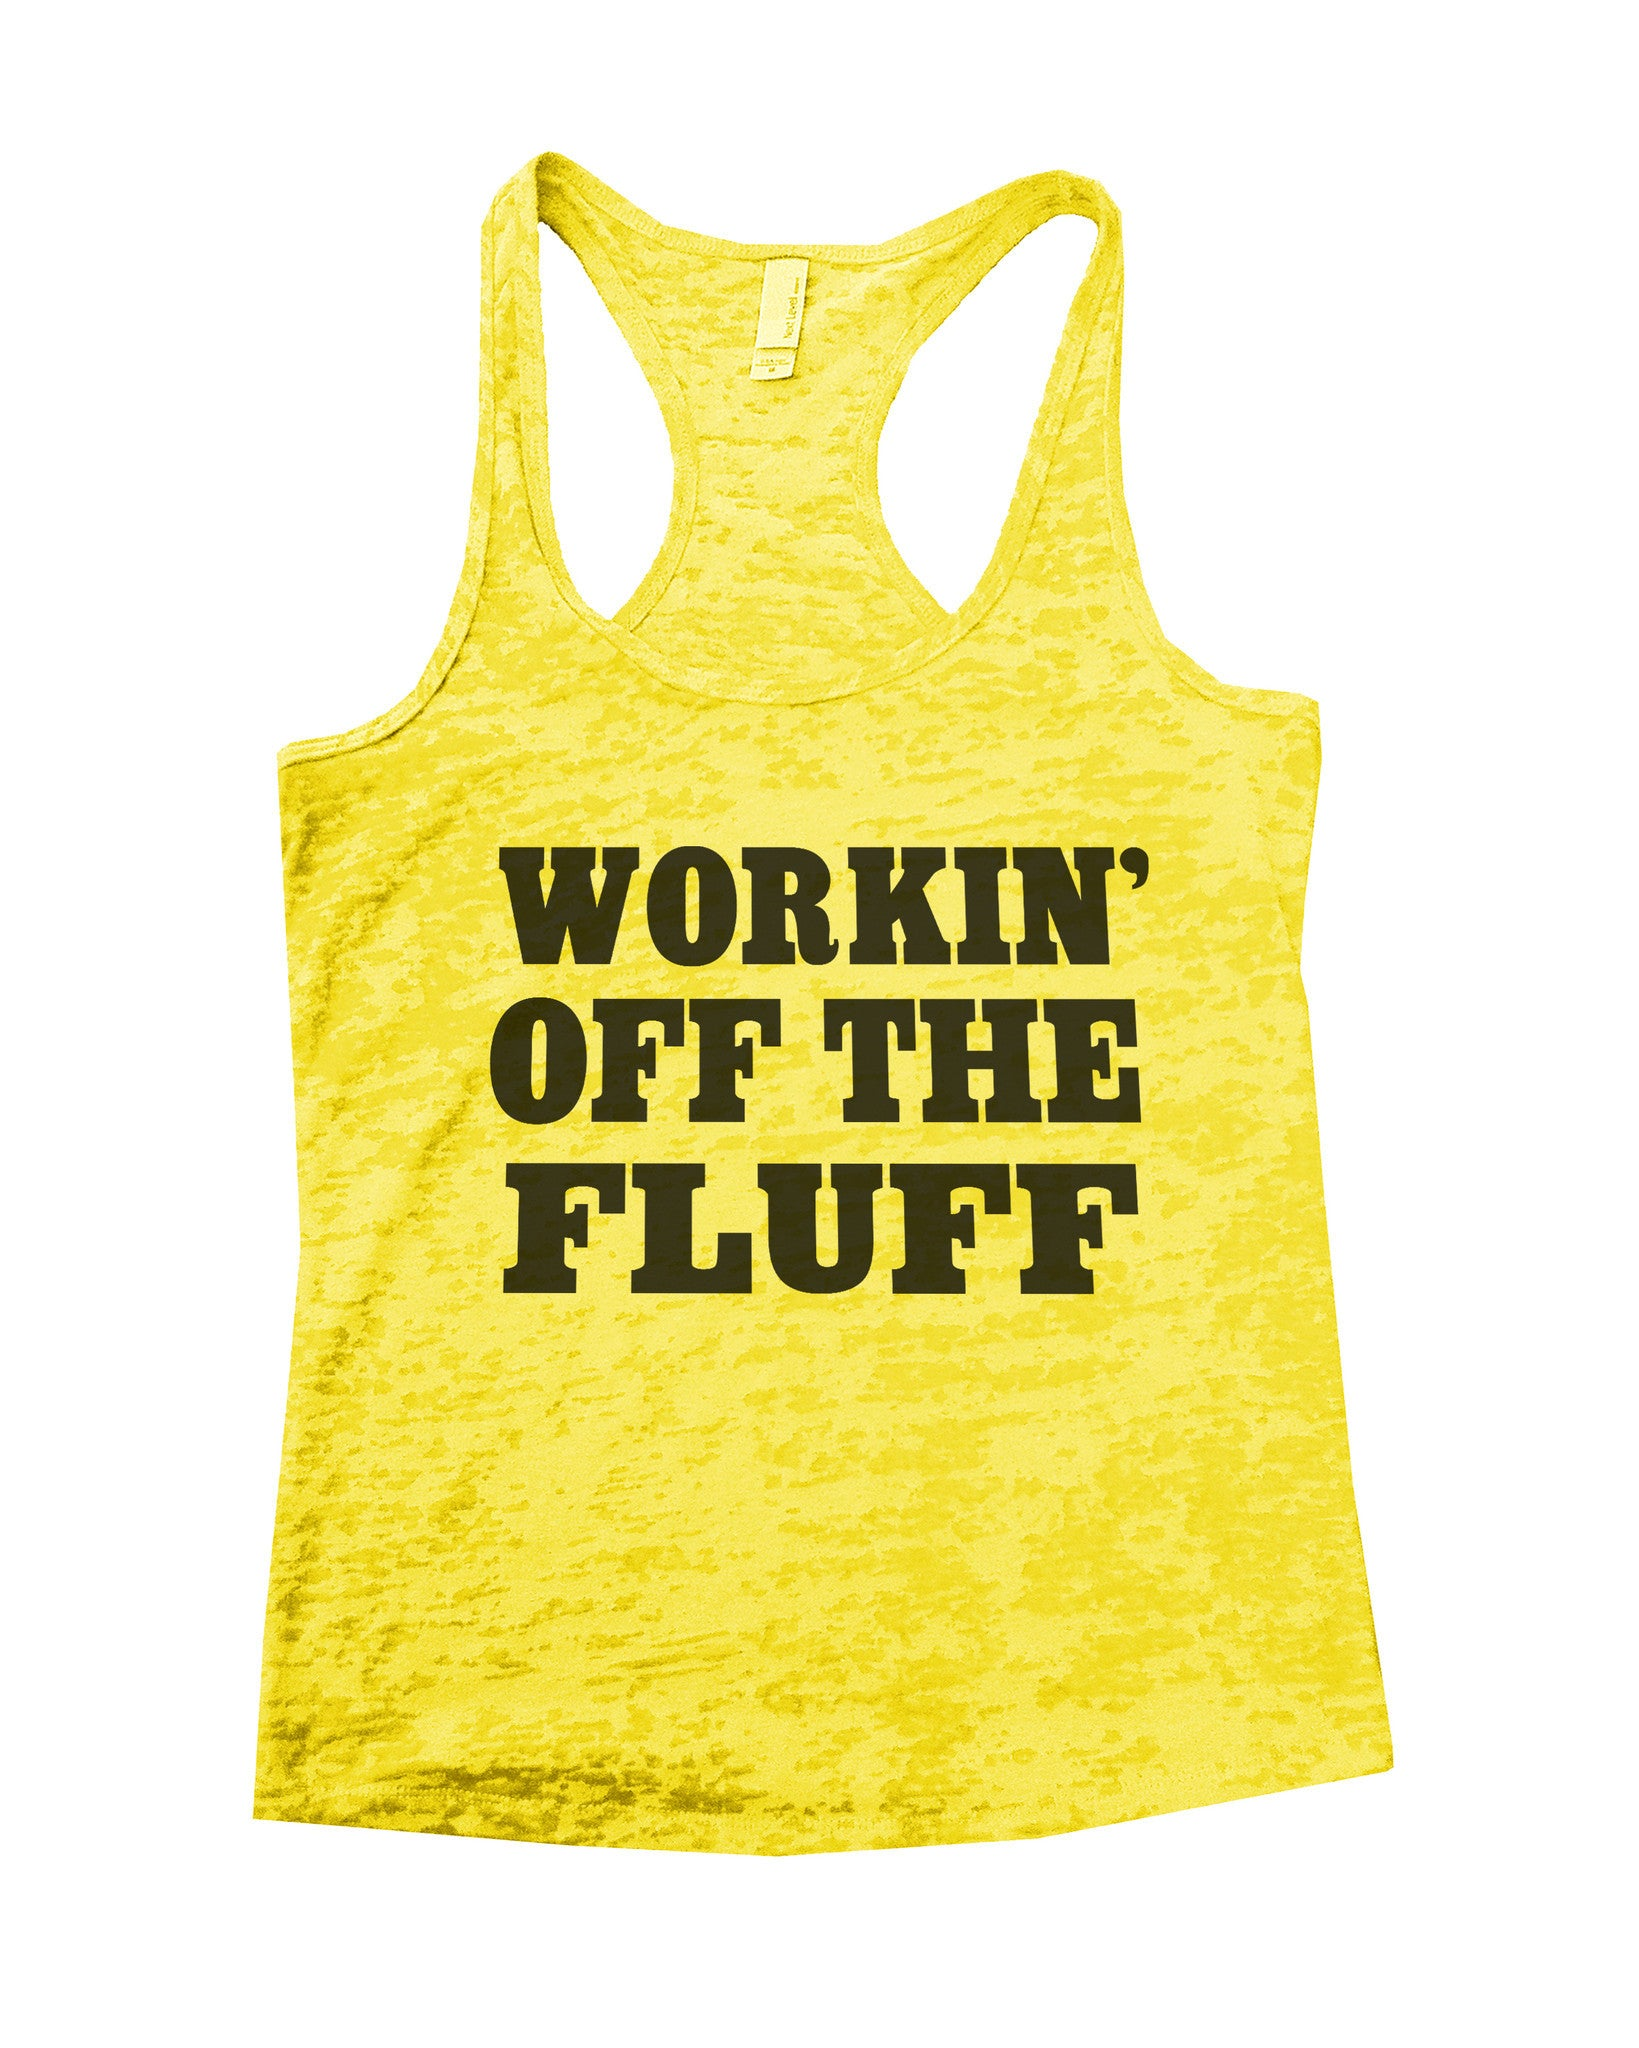 Working Off The Fluff Burnout Tank Top By BurnoutTankTops.com - 688 - Funny Shirts Tank Tops Burnouts and Triblends  - 6